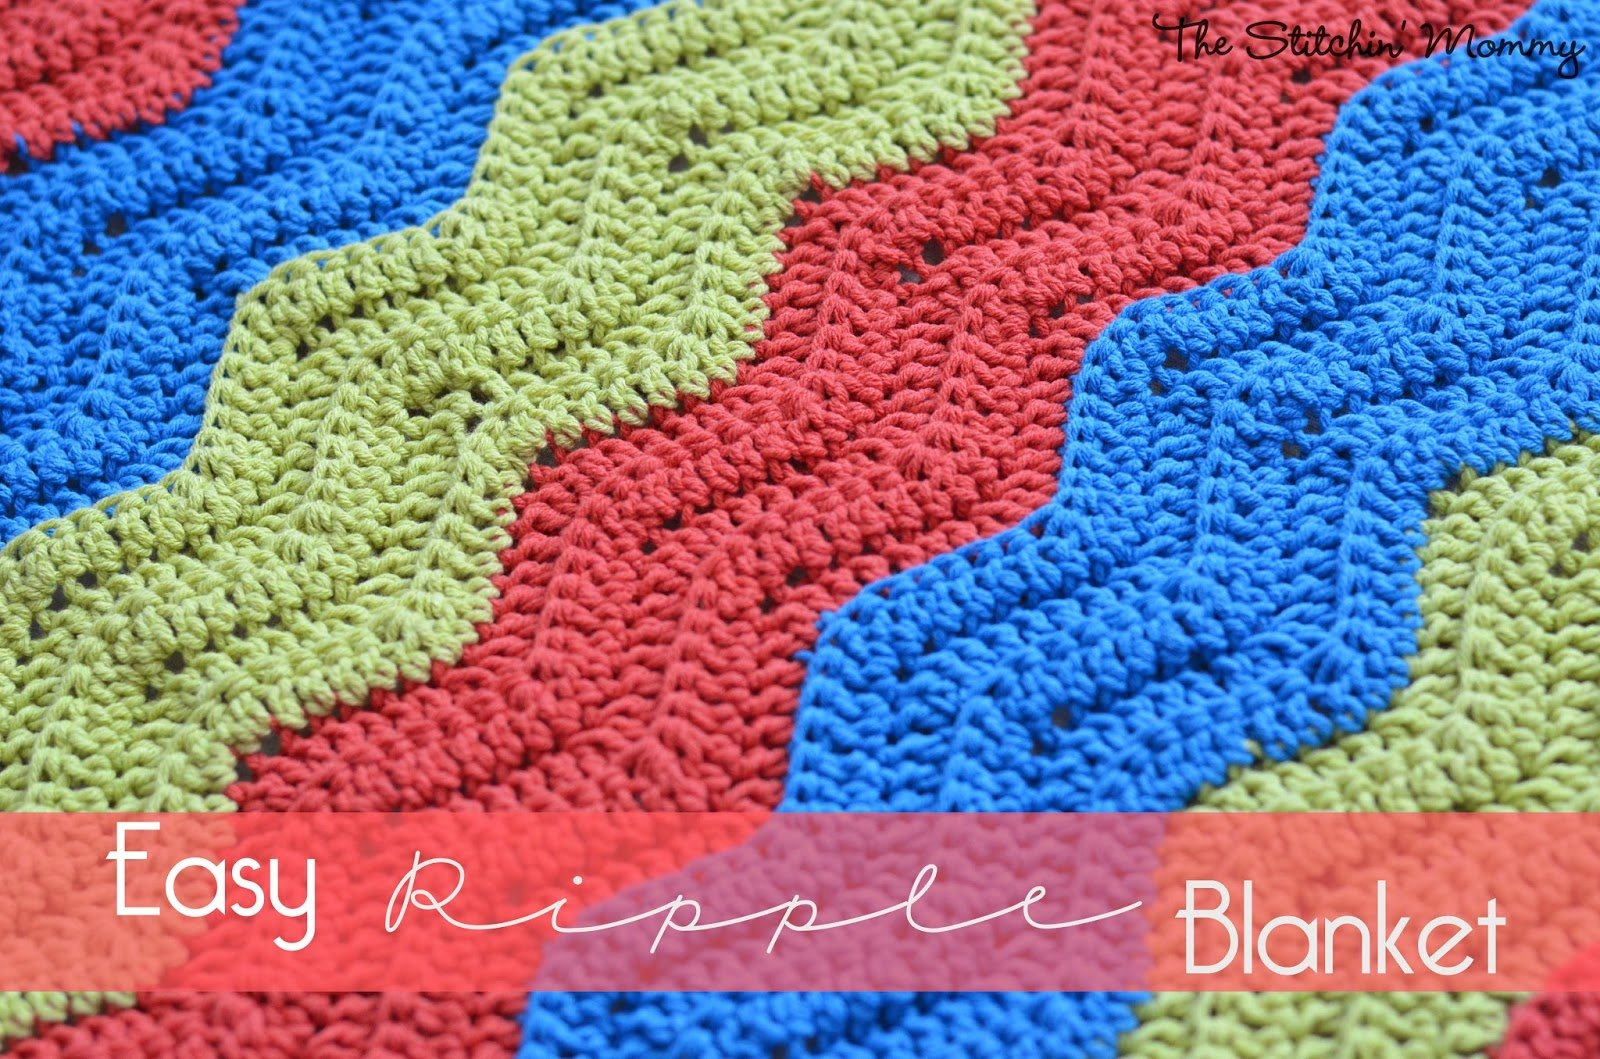 Easy Crochet Ripple Blanket by The Stitchin' Mommy